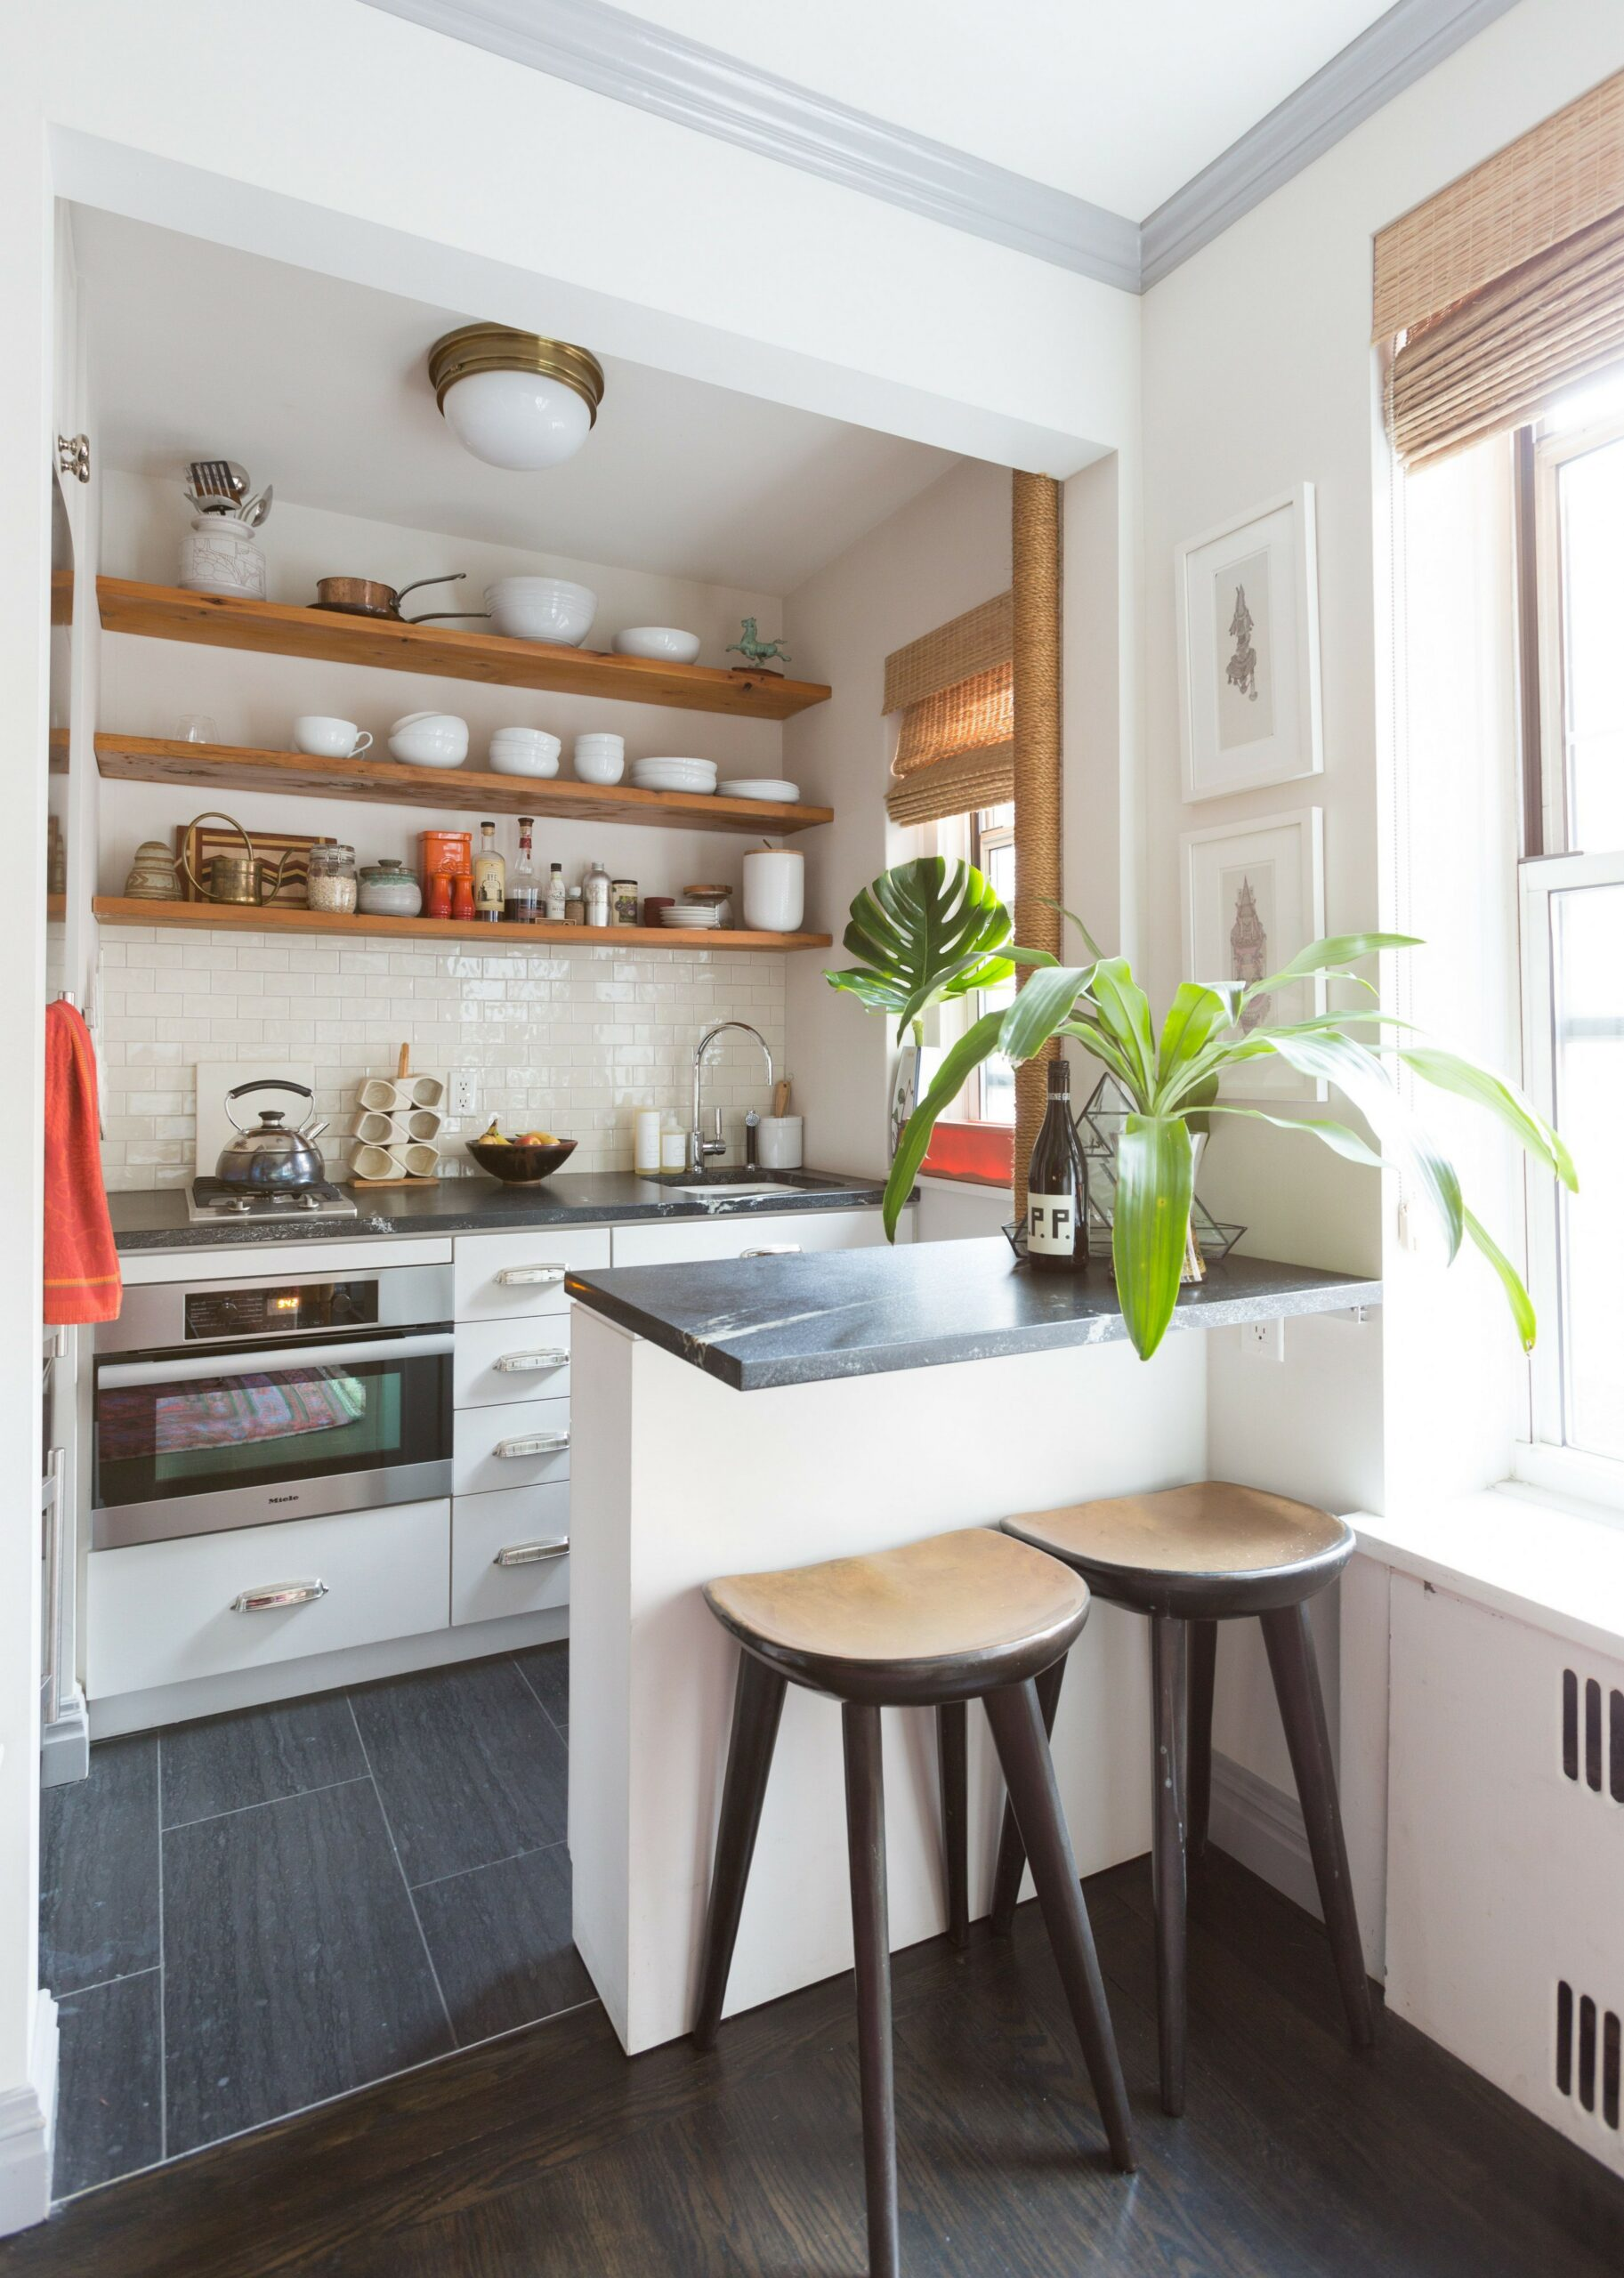 86 Some Small Kitchen Ideas To Help You Do Up Your Kitchen 60